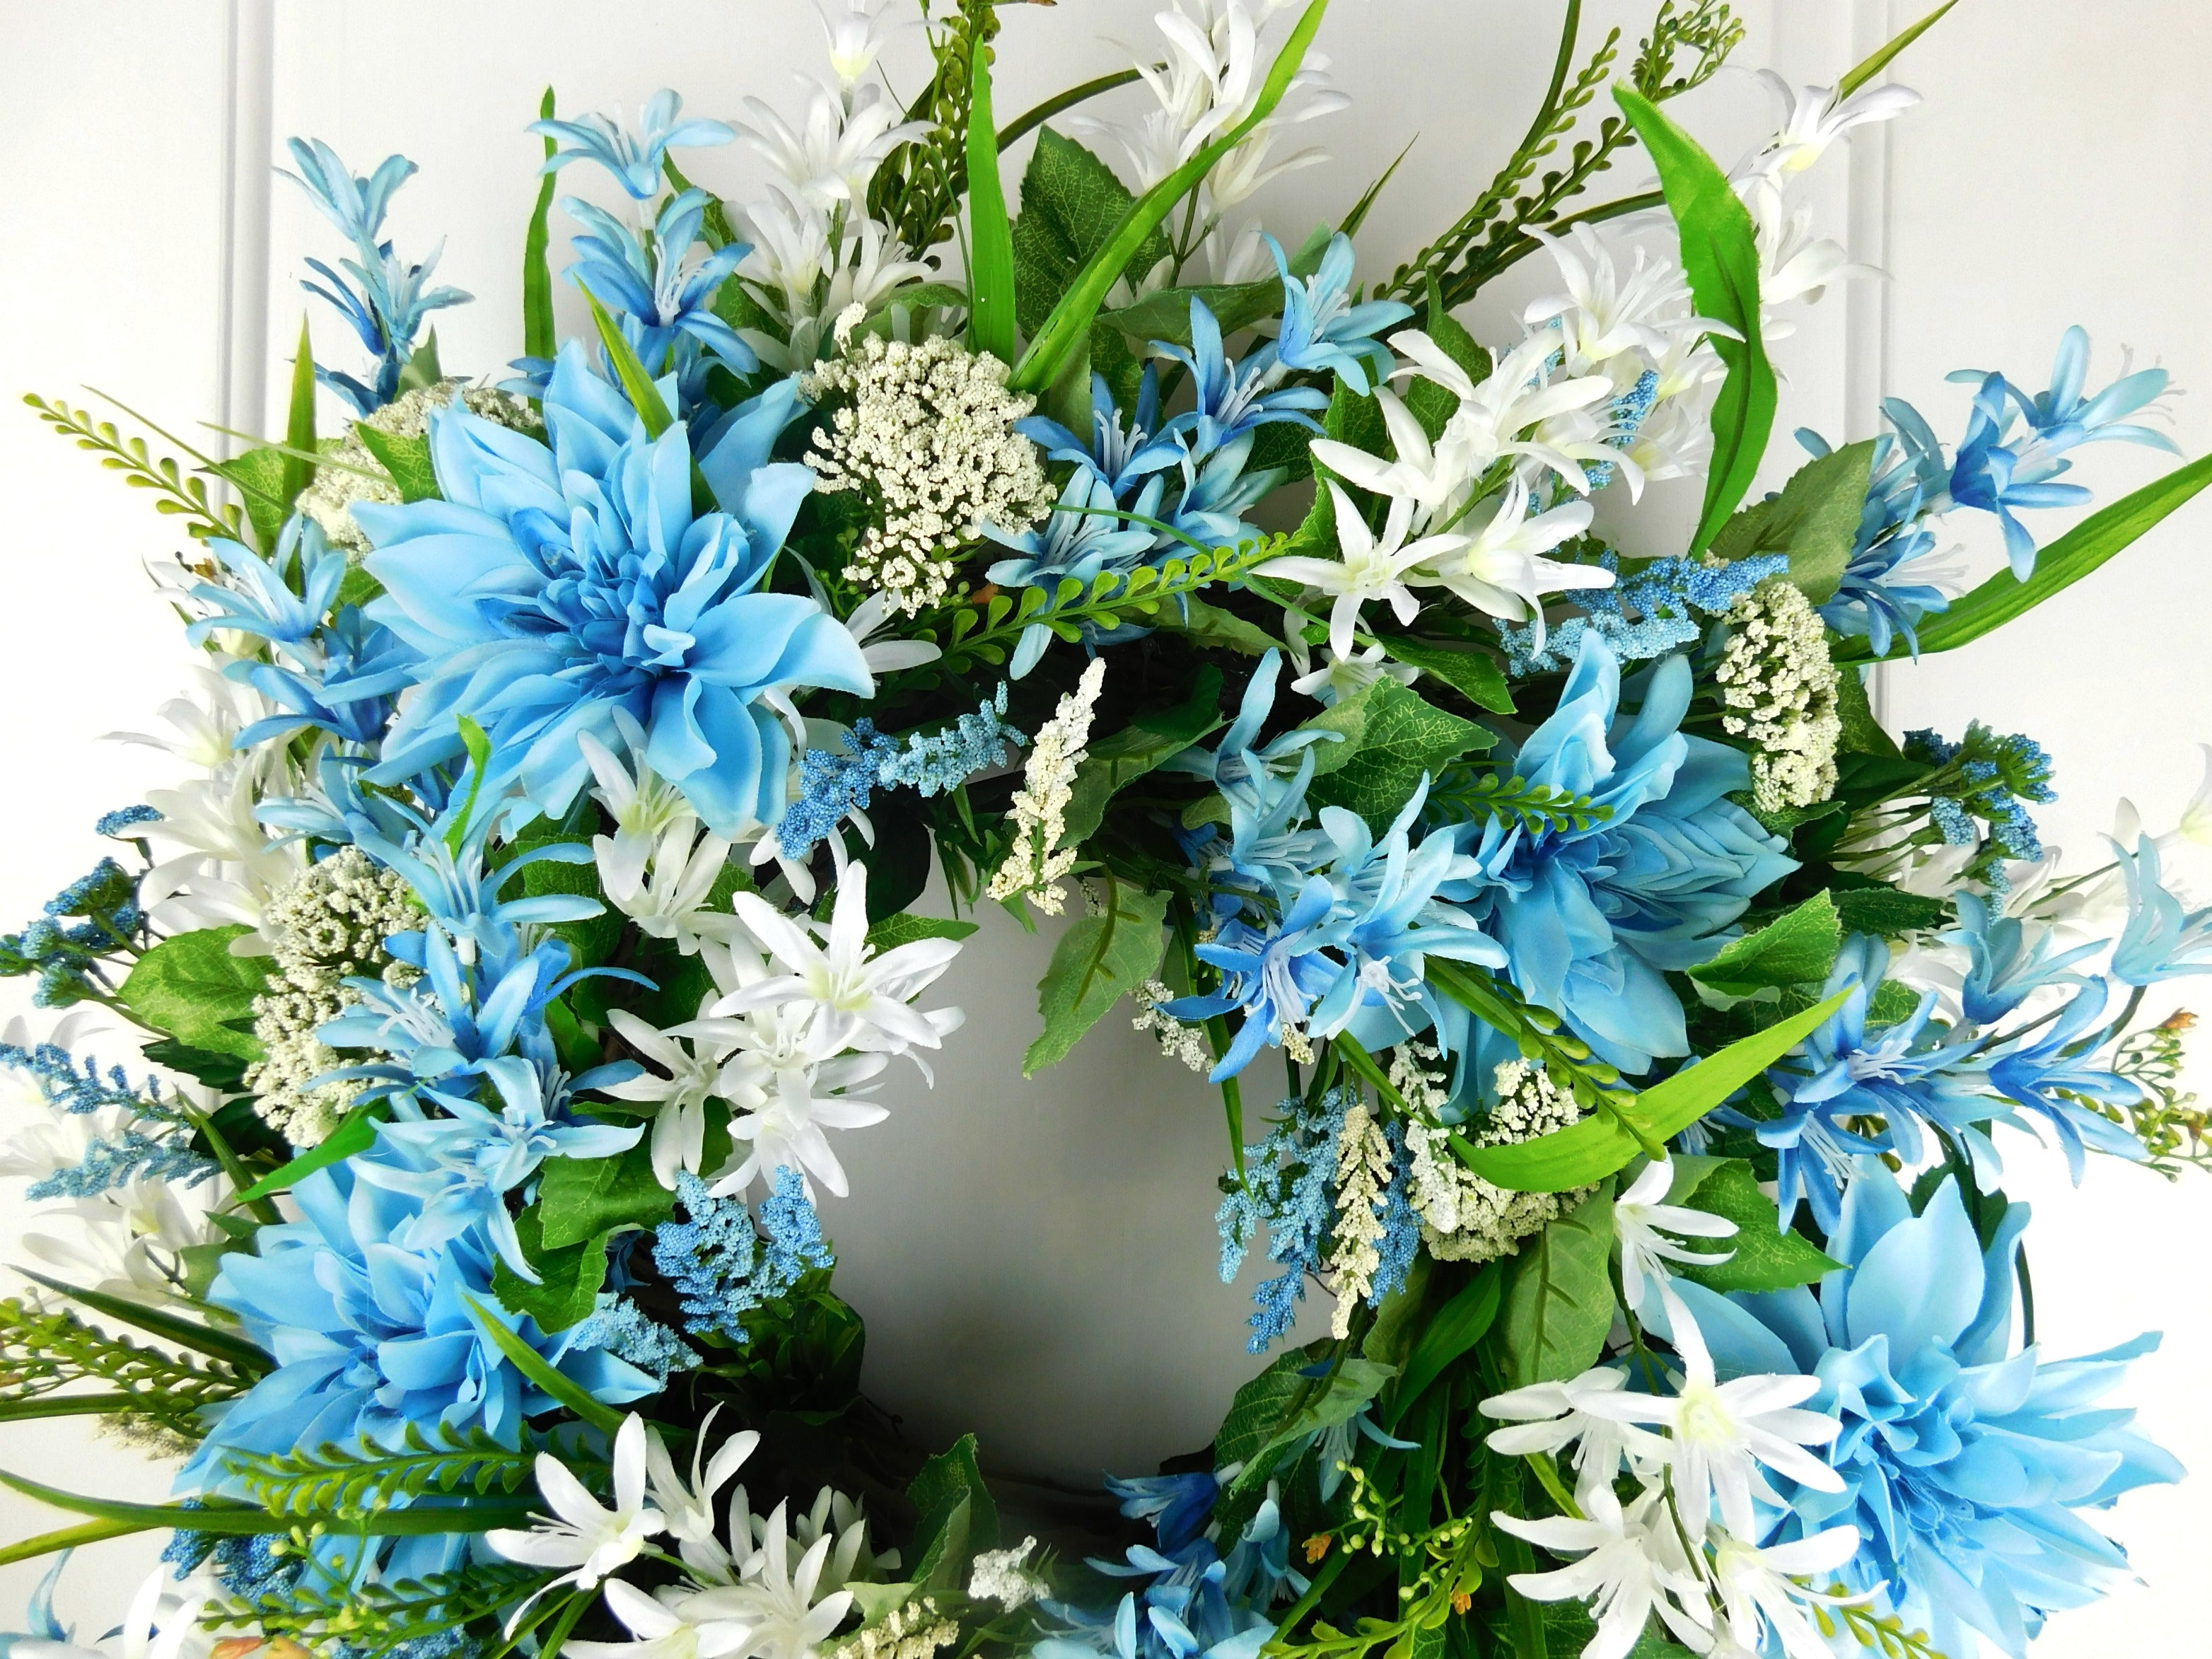 Blue and white wreath blue floral grapevine wreath virginia blue and white wreath blue floral grapevine wreath izmirmasajfo Gallery